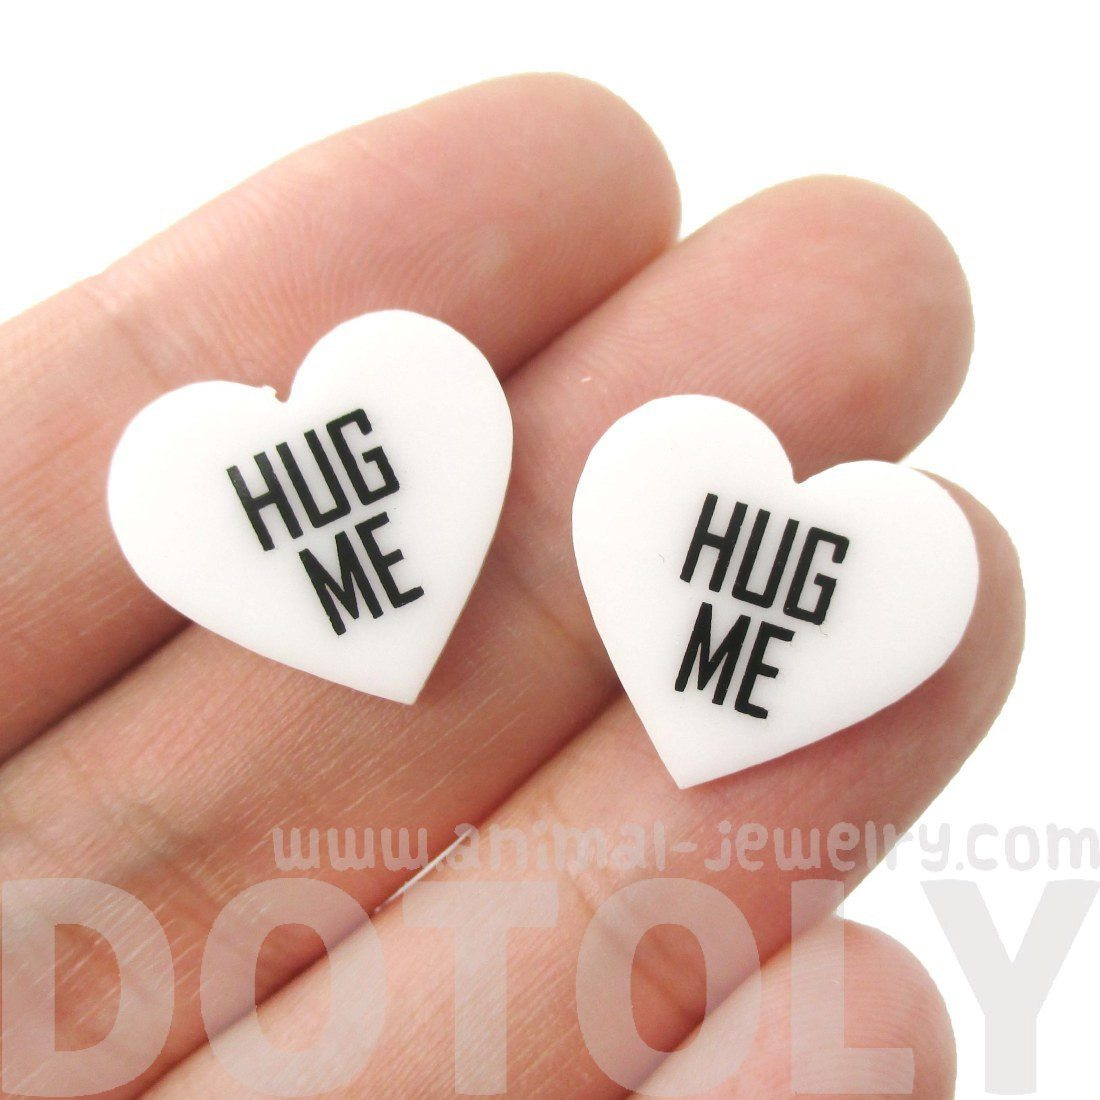 Hug Me Candy Heart Sweethearts Shaped Laser Cut Stud Earrings in White